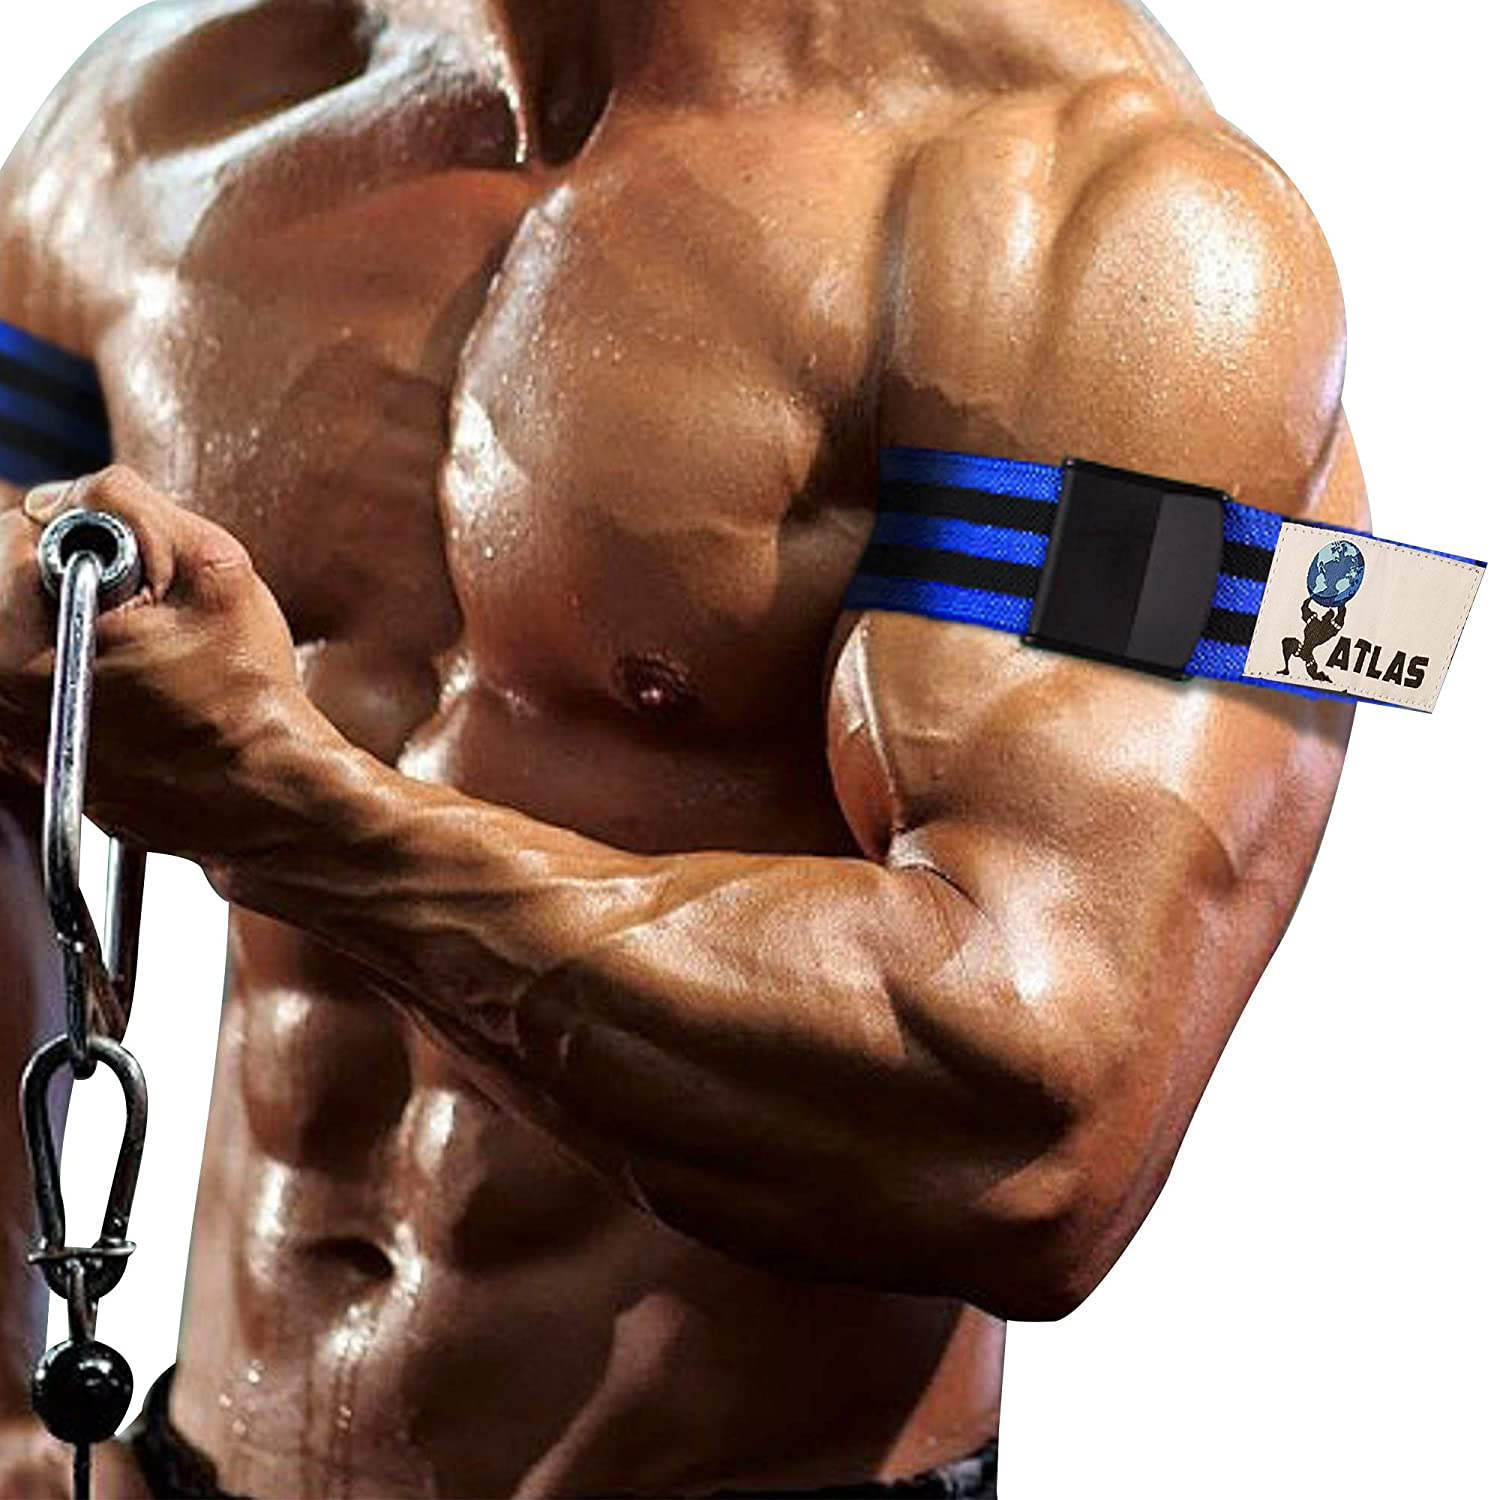 ATLAS Occlusion Training Bands Get Lean Muscles Without Lifting Heavy Weights, Blood Flow Restriction Bands BFR